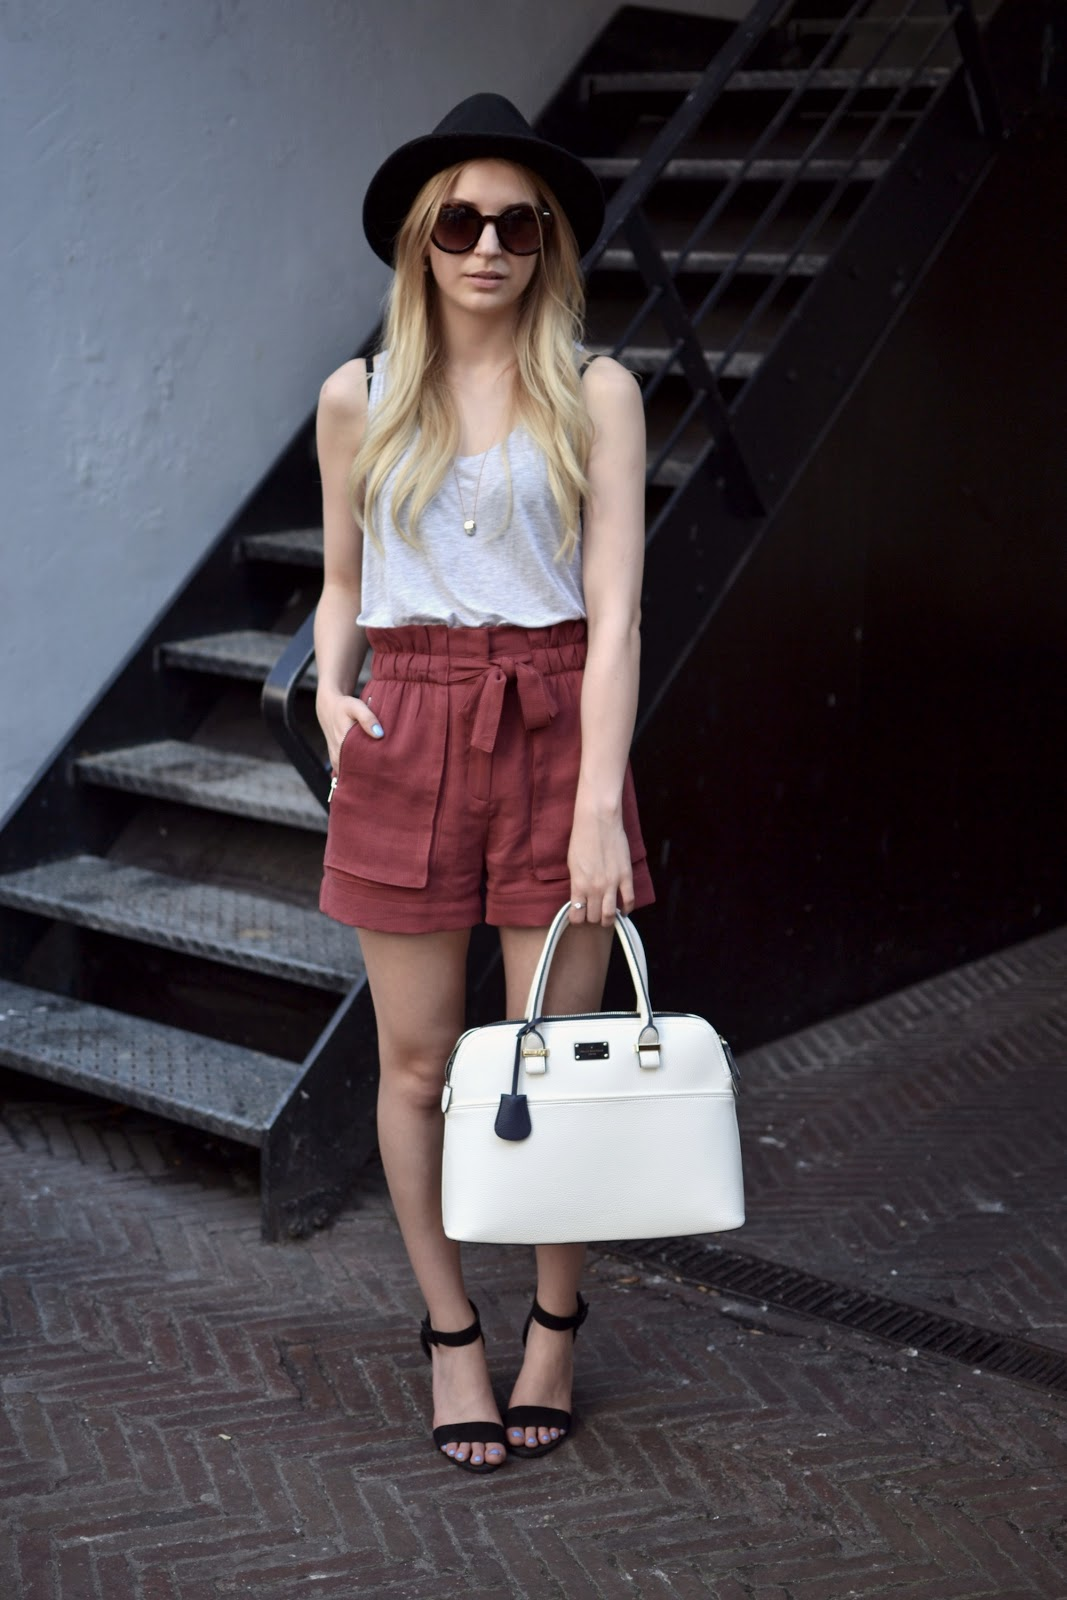 Luxembourg fashion blogger